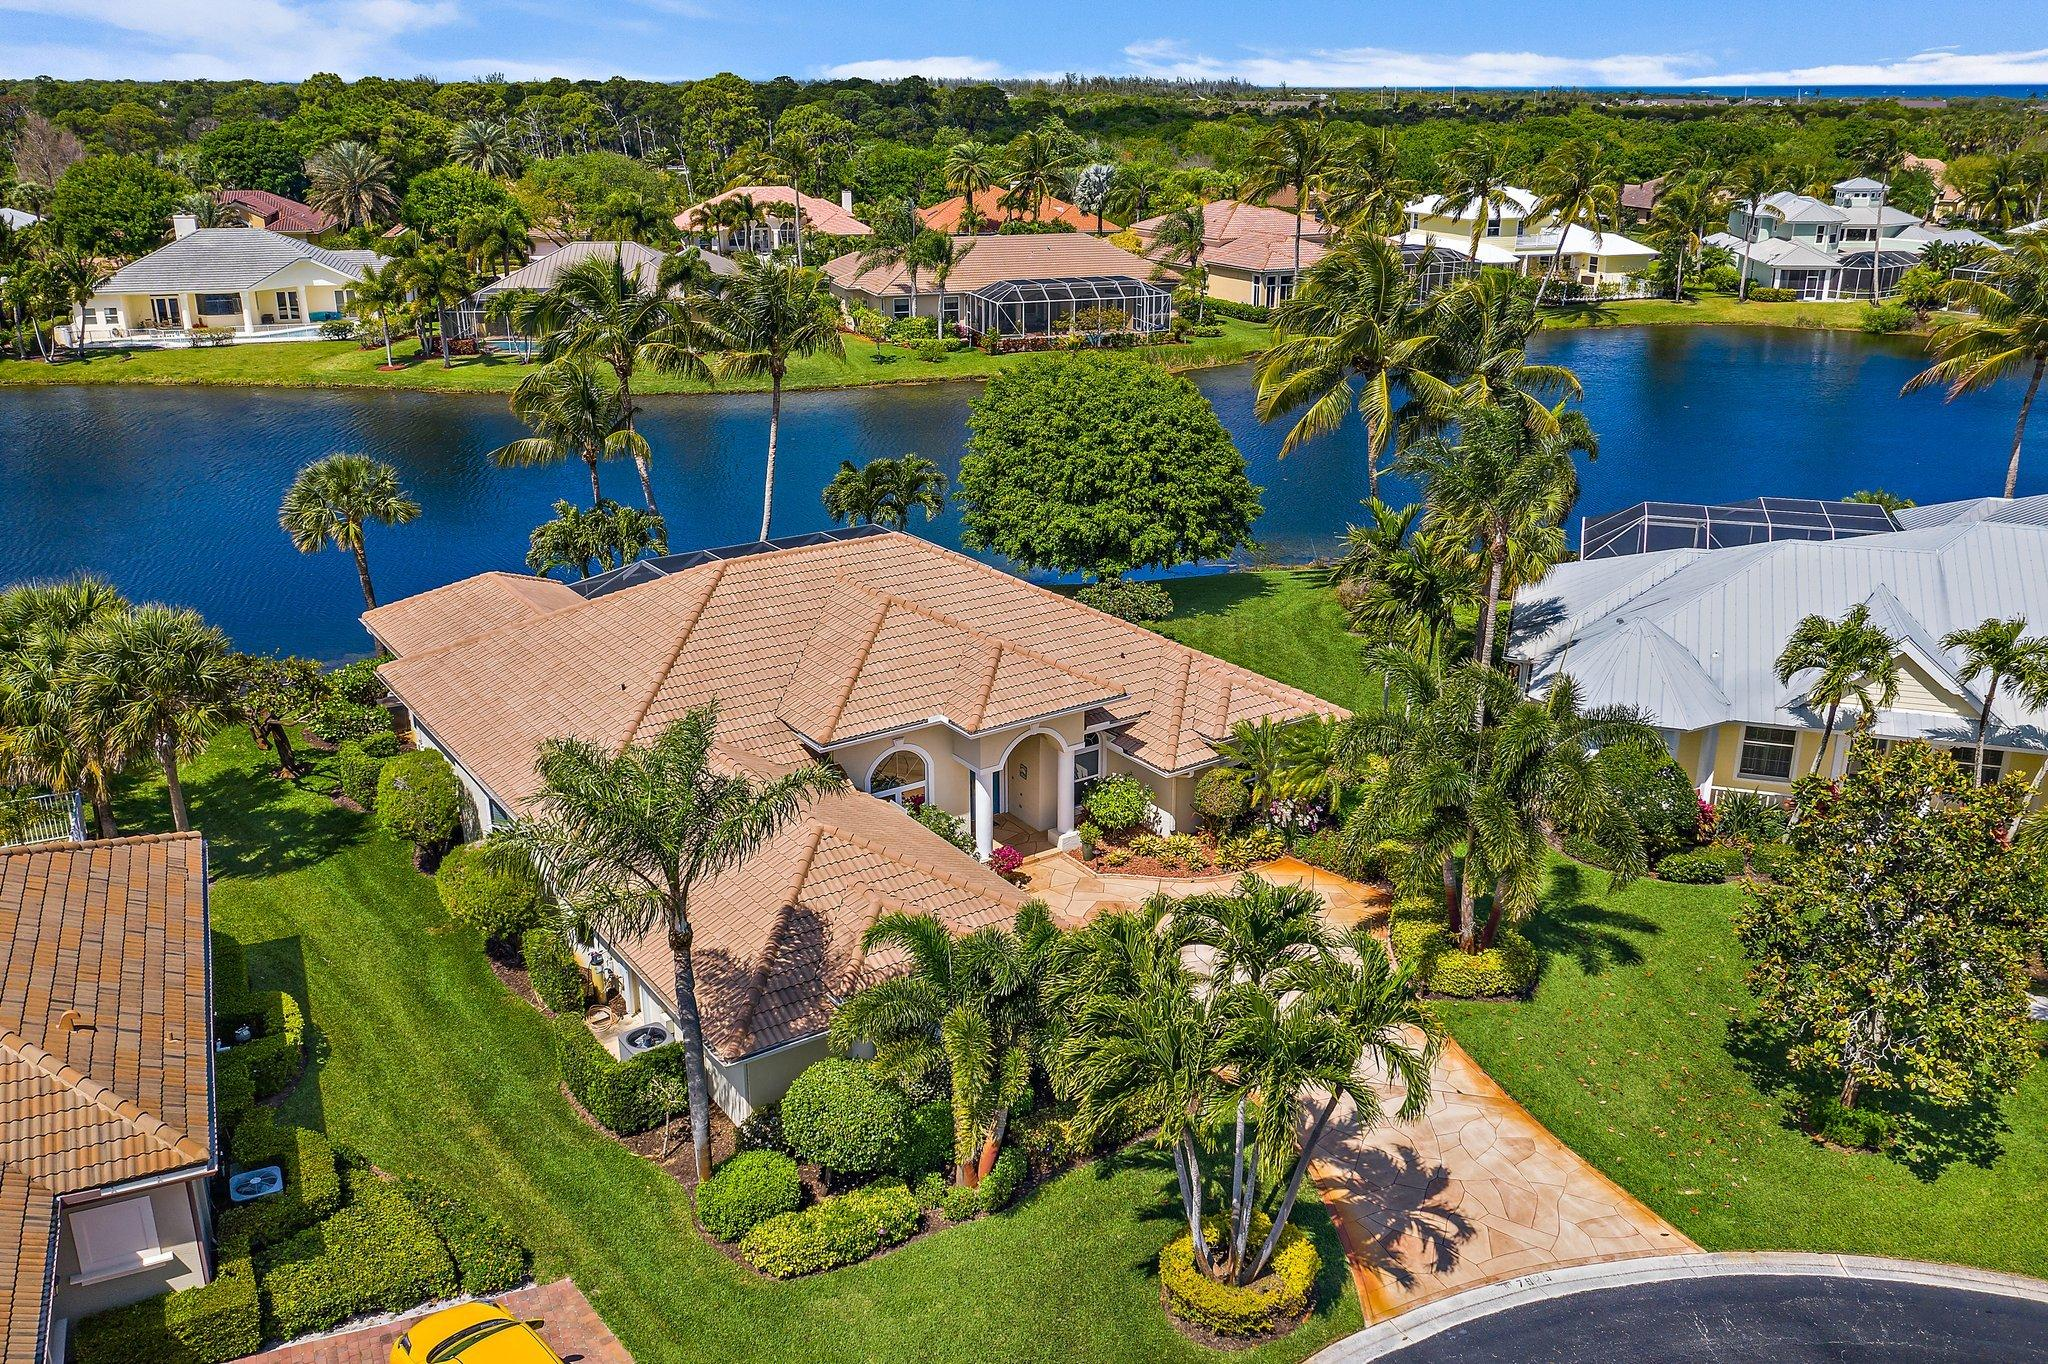 Home for sale in Sanctuary Hobe Sound Florida